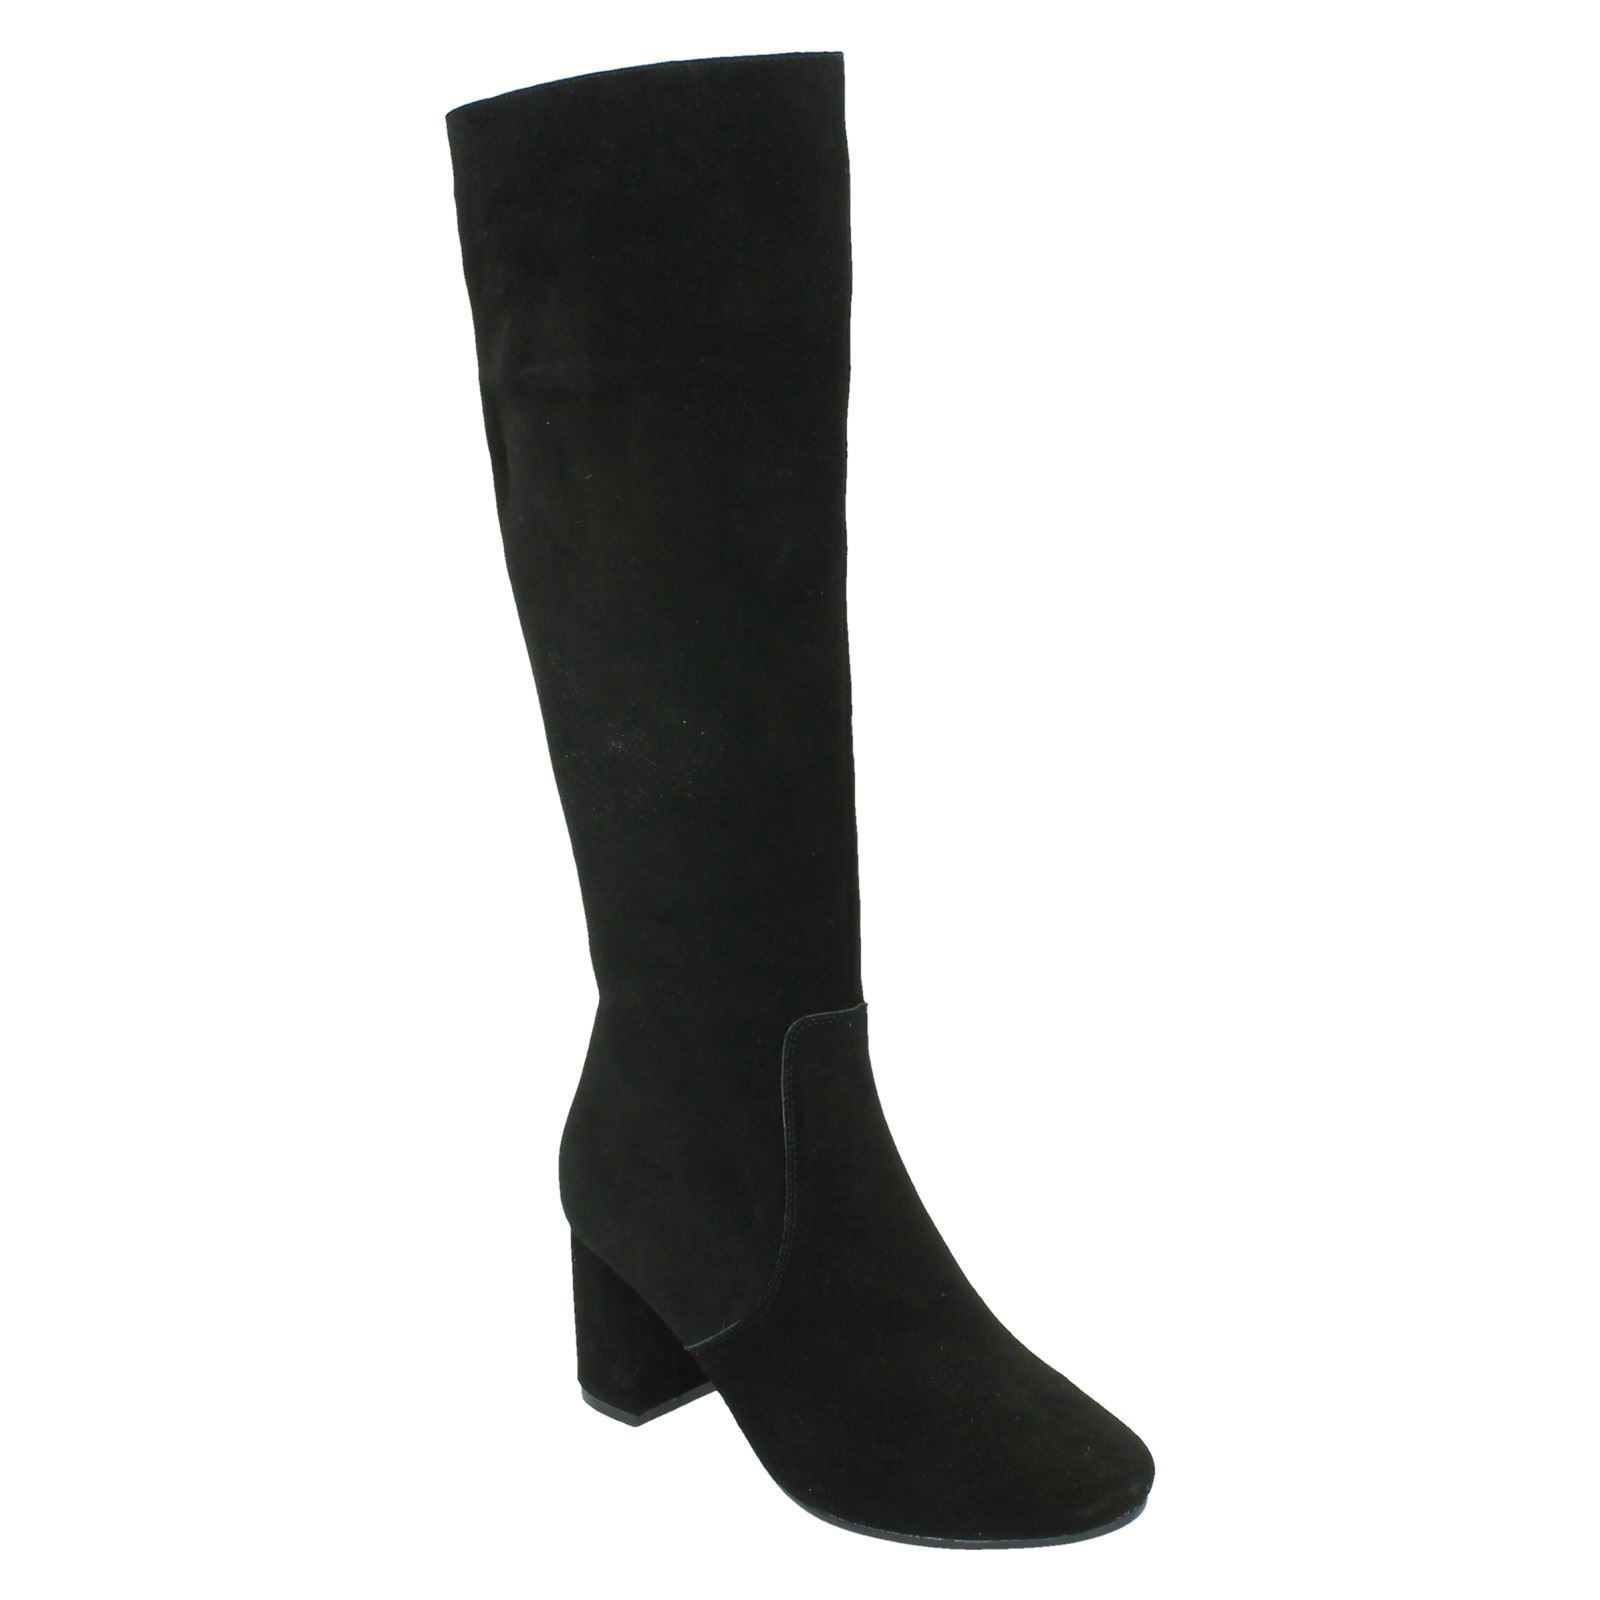 F50536 BLOCK LEATHER COLLECTION LADIES HIGH BLOCK F50536 HEEL ZIP UP SUEDE LONG WINTER BOOTS f9bb0f